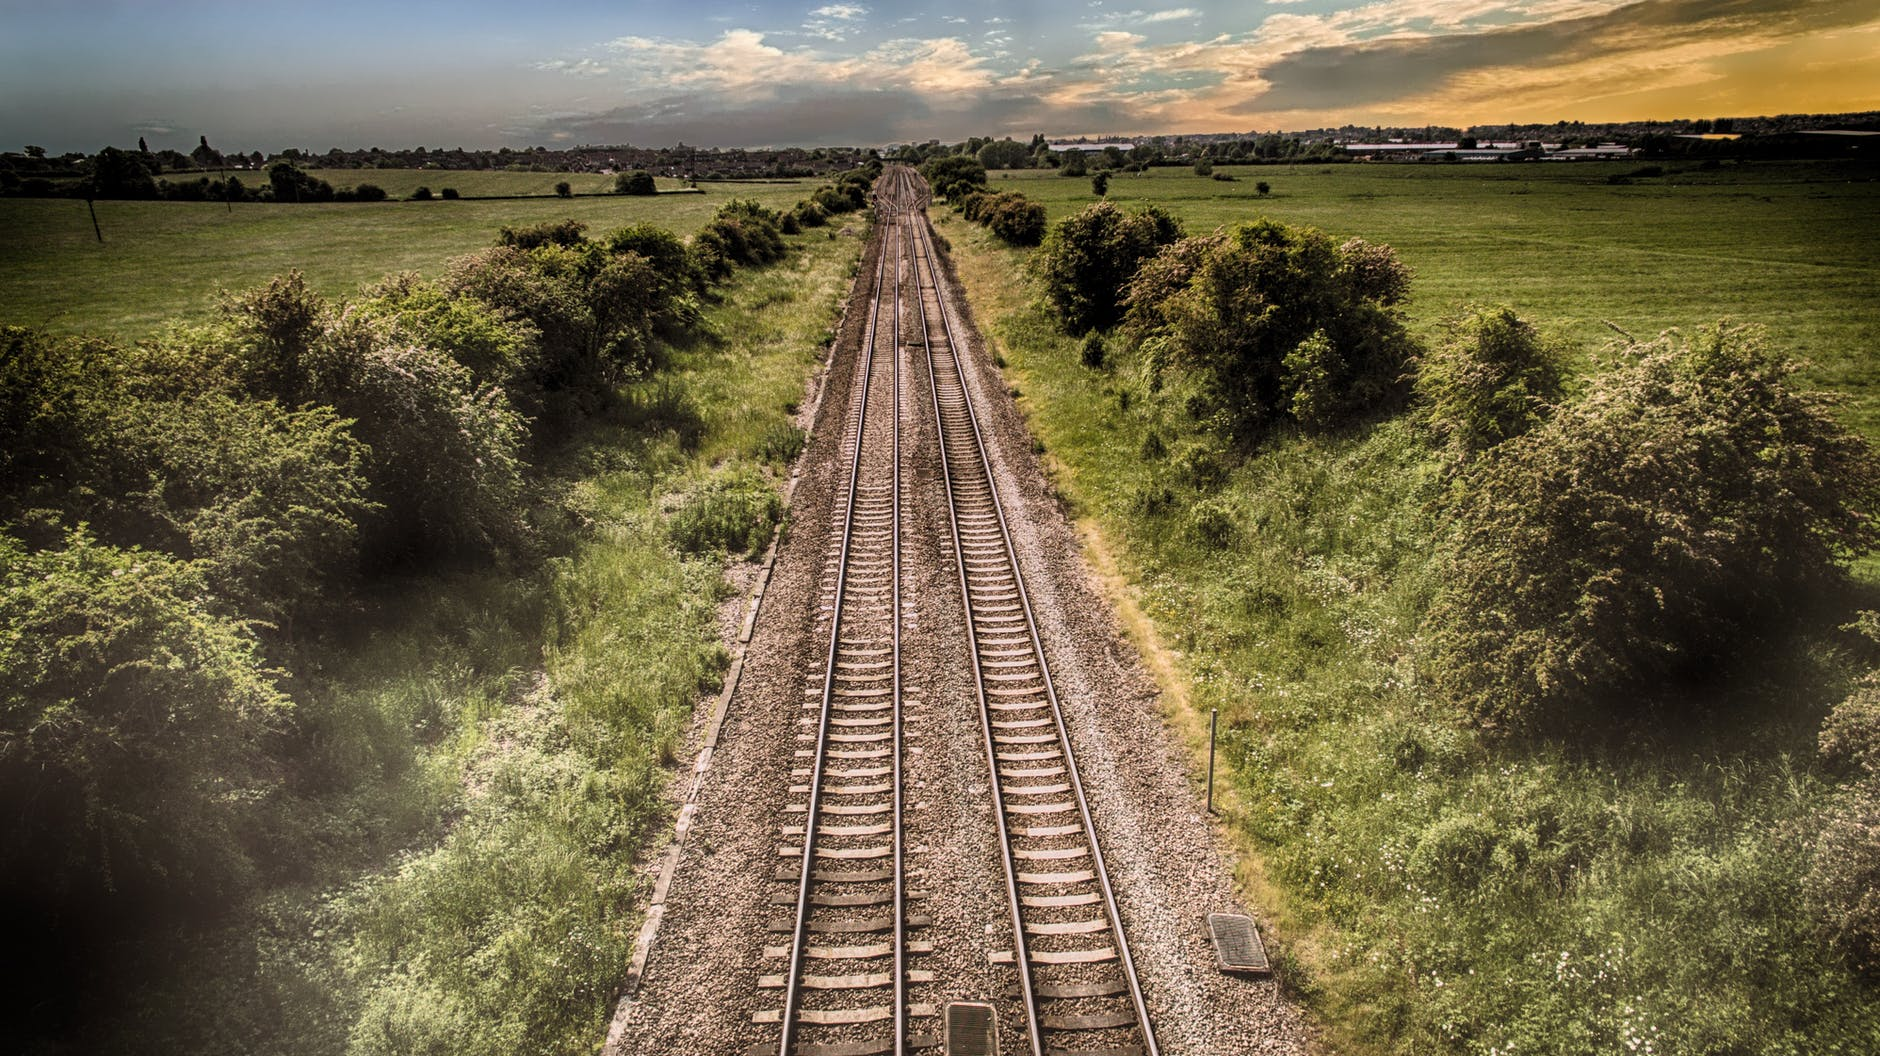 A photo of some railroad tracks that lead off into the distance with a green landscape of fields and trees.